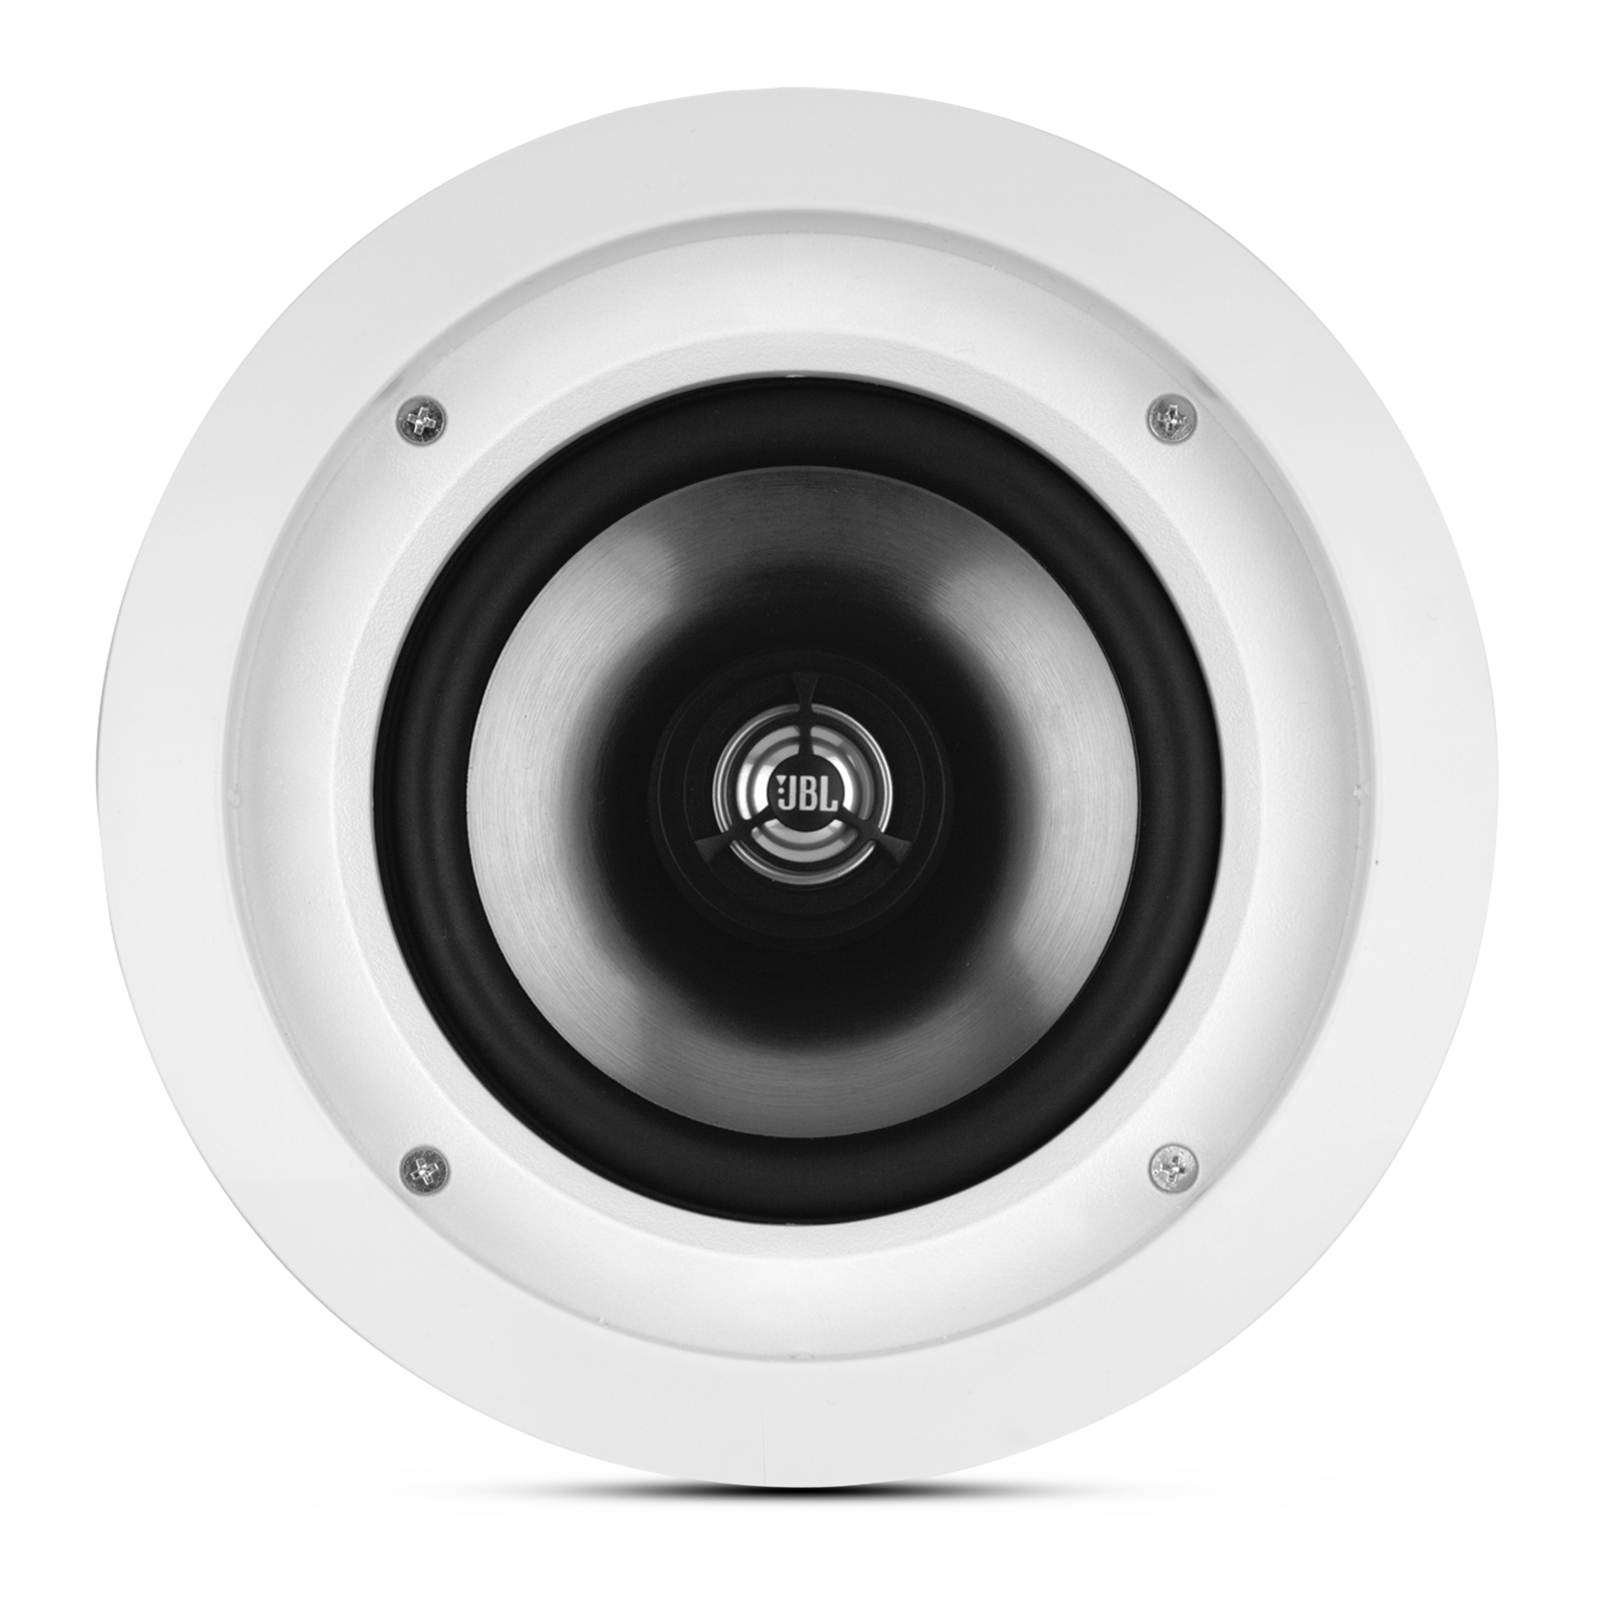 vegas commercialseries professional las series excellent introducing its ceiling infocomm press providing paging for is commercial new speakers at jbl performance nevada